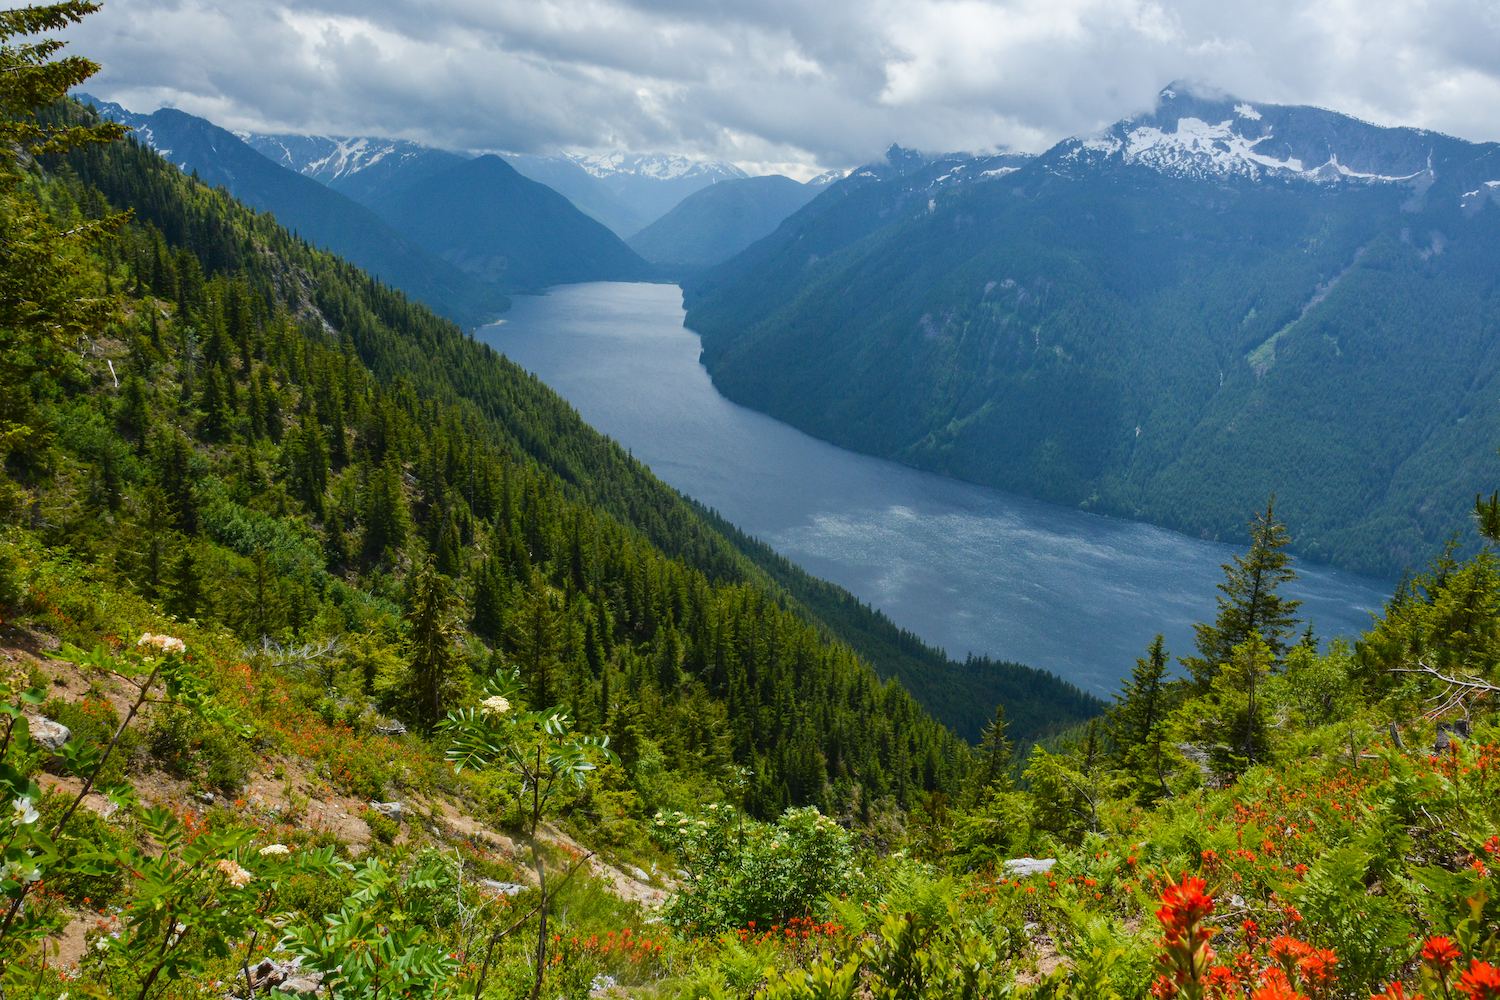 Chilliwack Lake. Photo: Stephen Hui